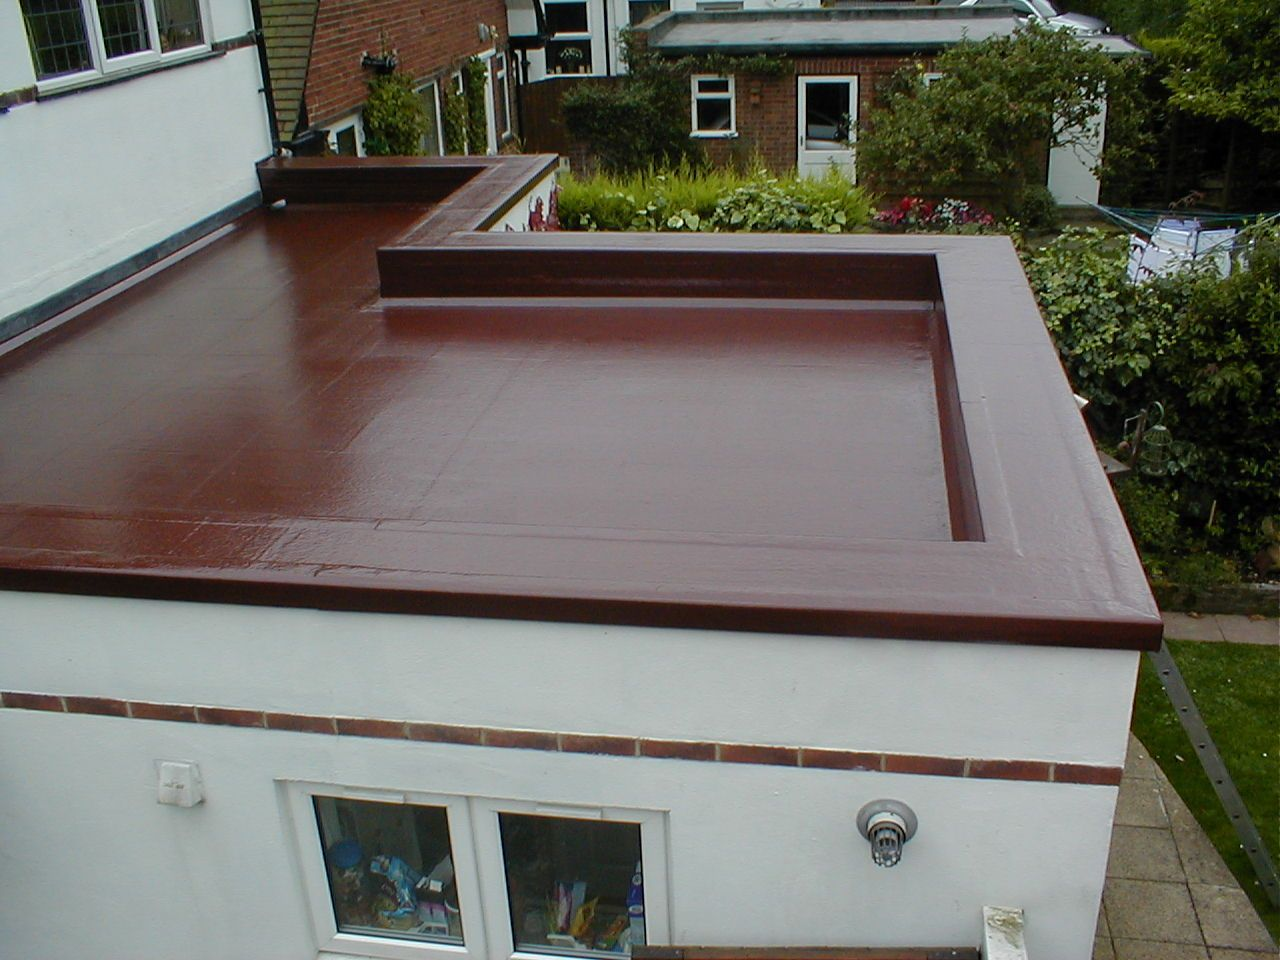 Flat Roofing My Affordable Roof John David Boggs Flat Roof Design Flat Roof Roof Design